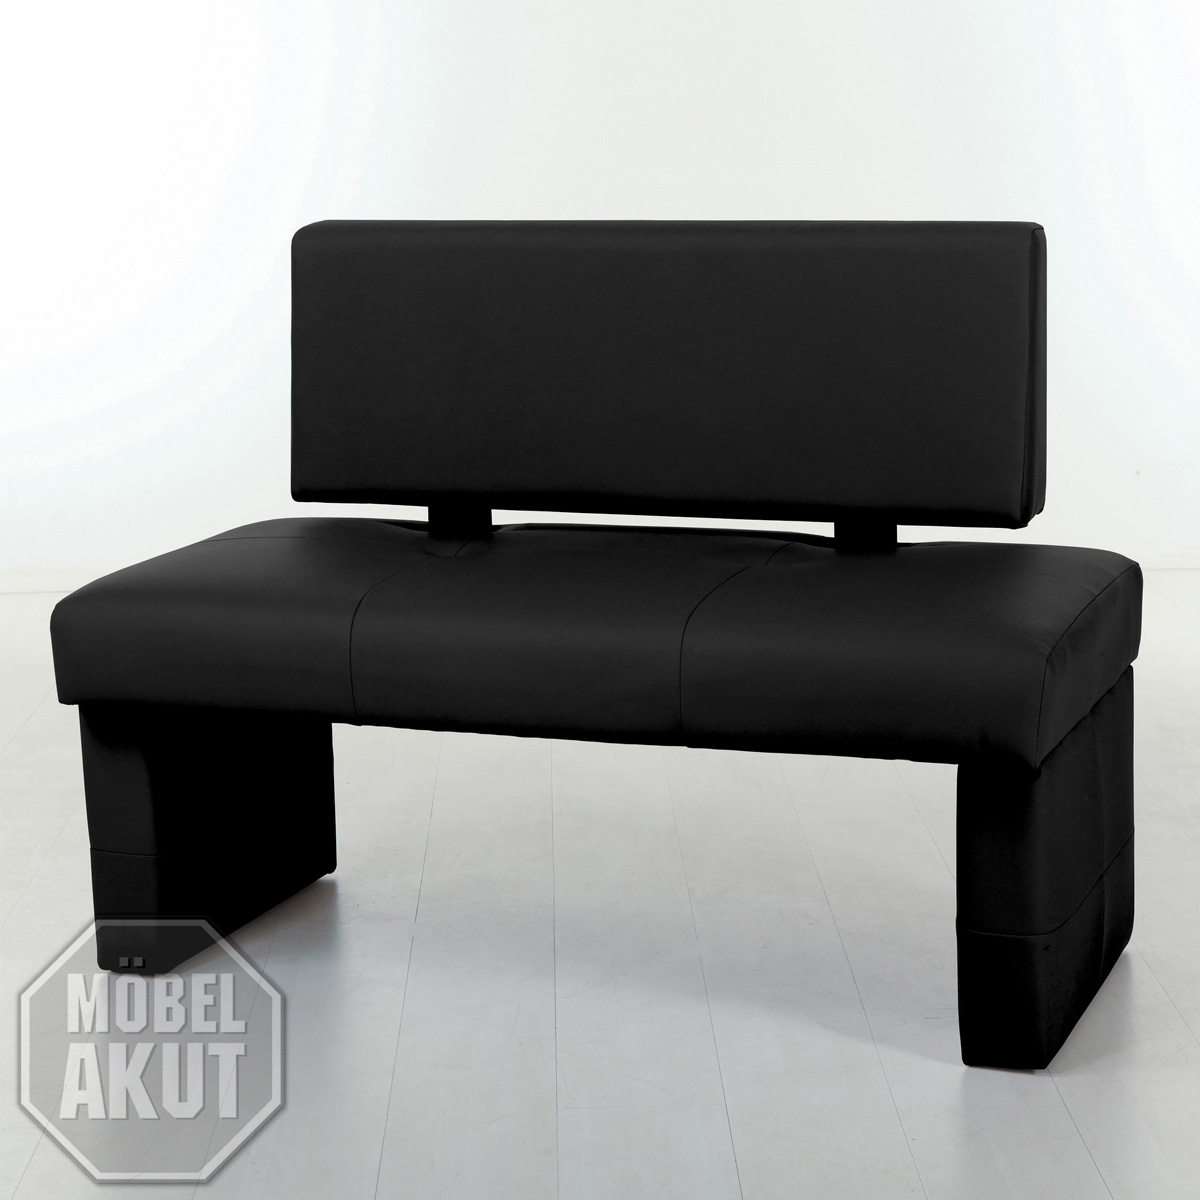 bank dimas sitzbank polsterbank mit r ckenlehne in schwarz 180 cm ebay. Black Bedroom Furniture Sets. Home Design Ideas